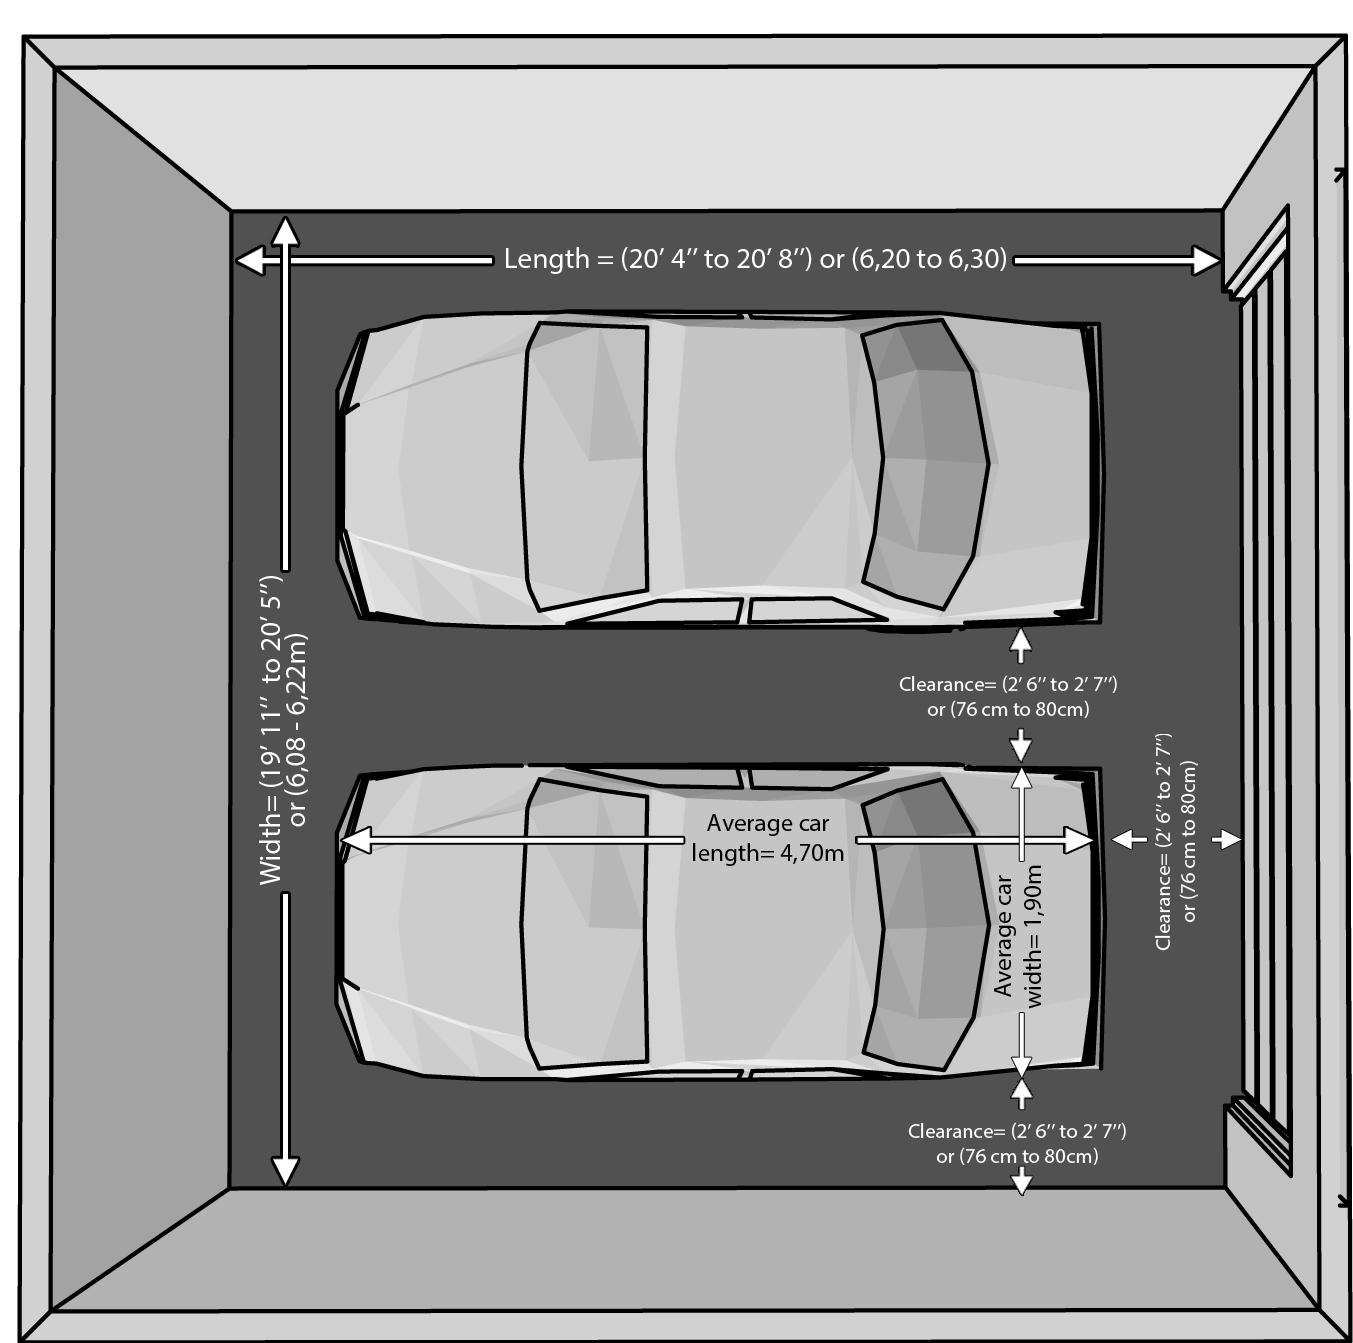 The dimensions of an one car and a two car garage for Garage dimensions 2 5 car